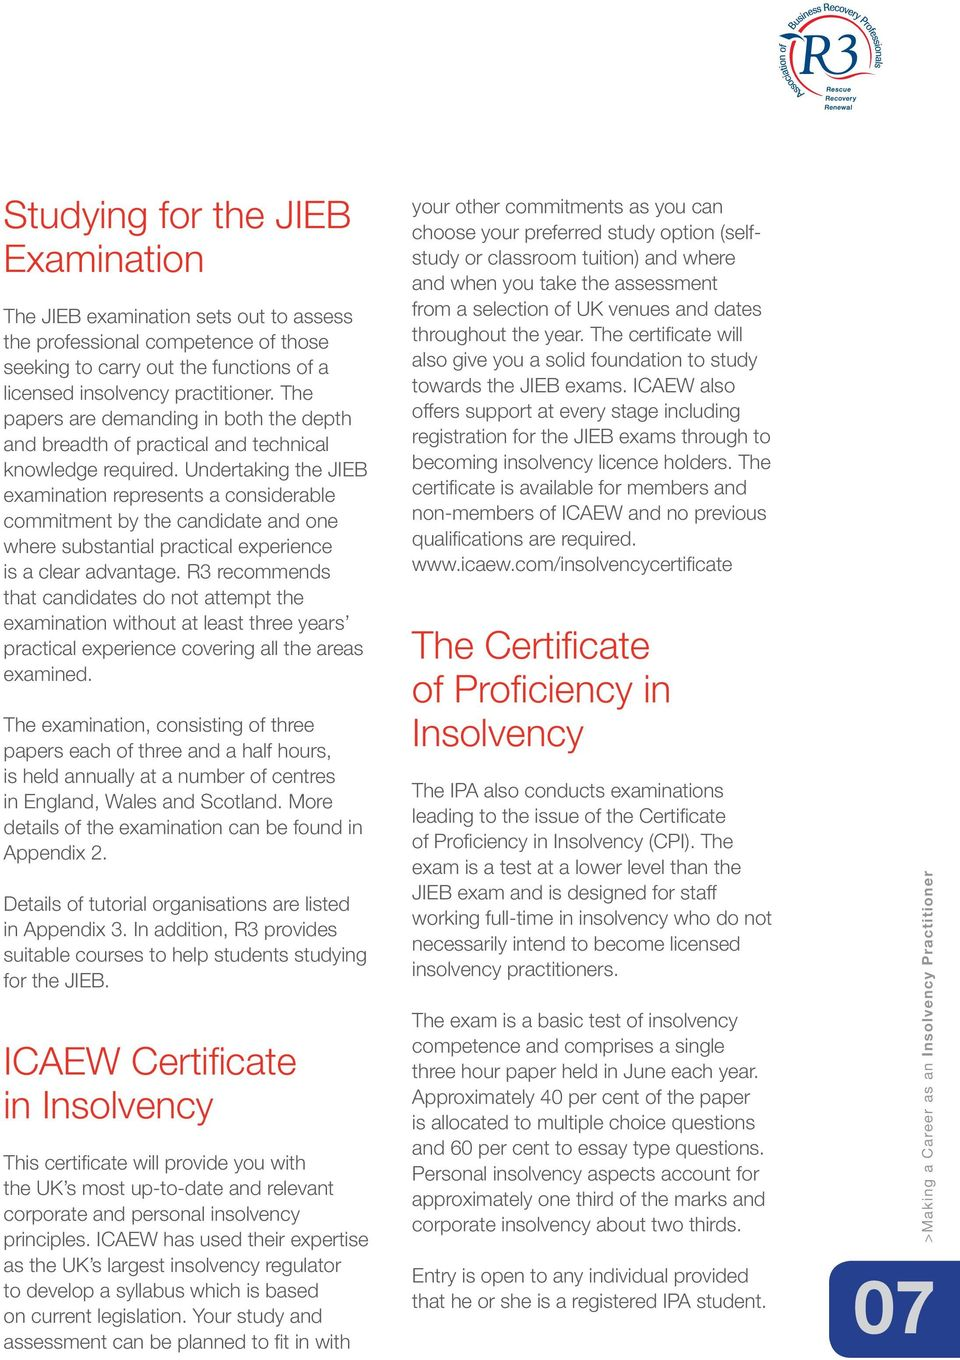 Undertaking the JIEB examination represents a considerable commitment by the candidate and one where substantial practical experience is a clear advantage.